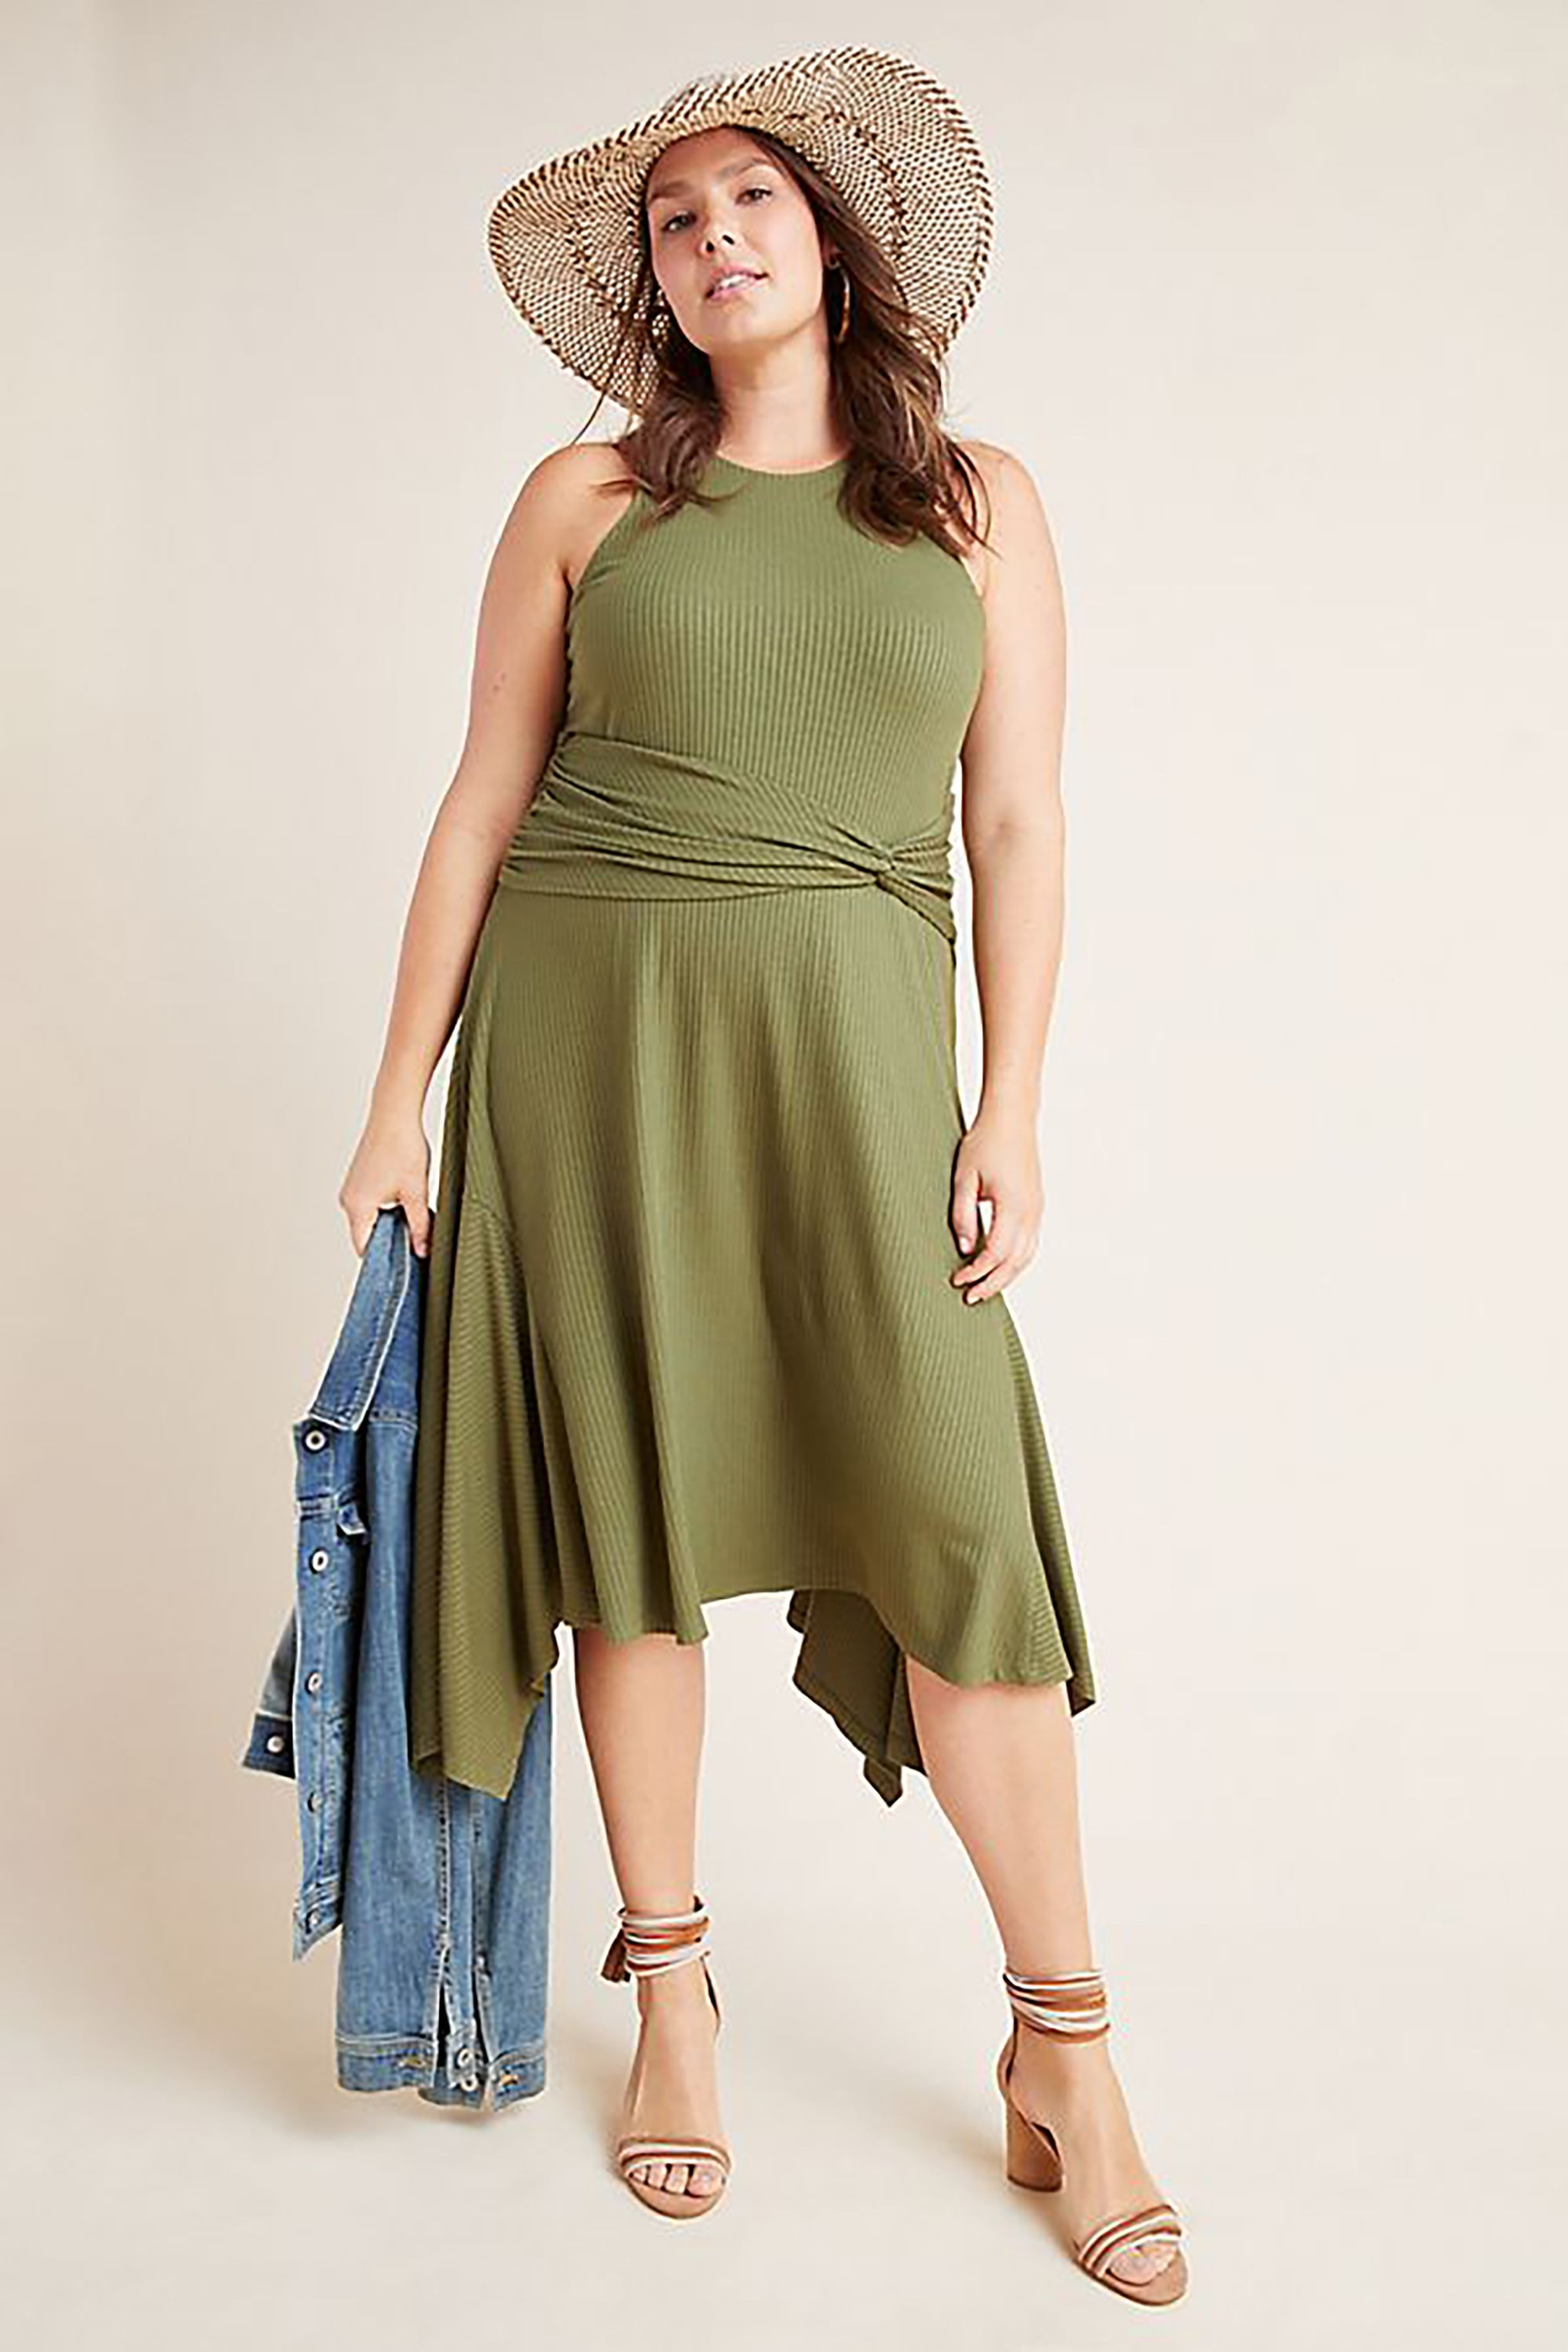 b8a3c163afbd2 What to Buy From Anthropologie's Plus-Size Clothing Line | Thanks to  Anthropologie's new plus collection, APlus by Anthropologie, a wider range  of women no ...